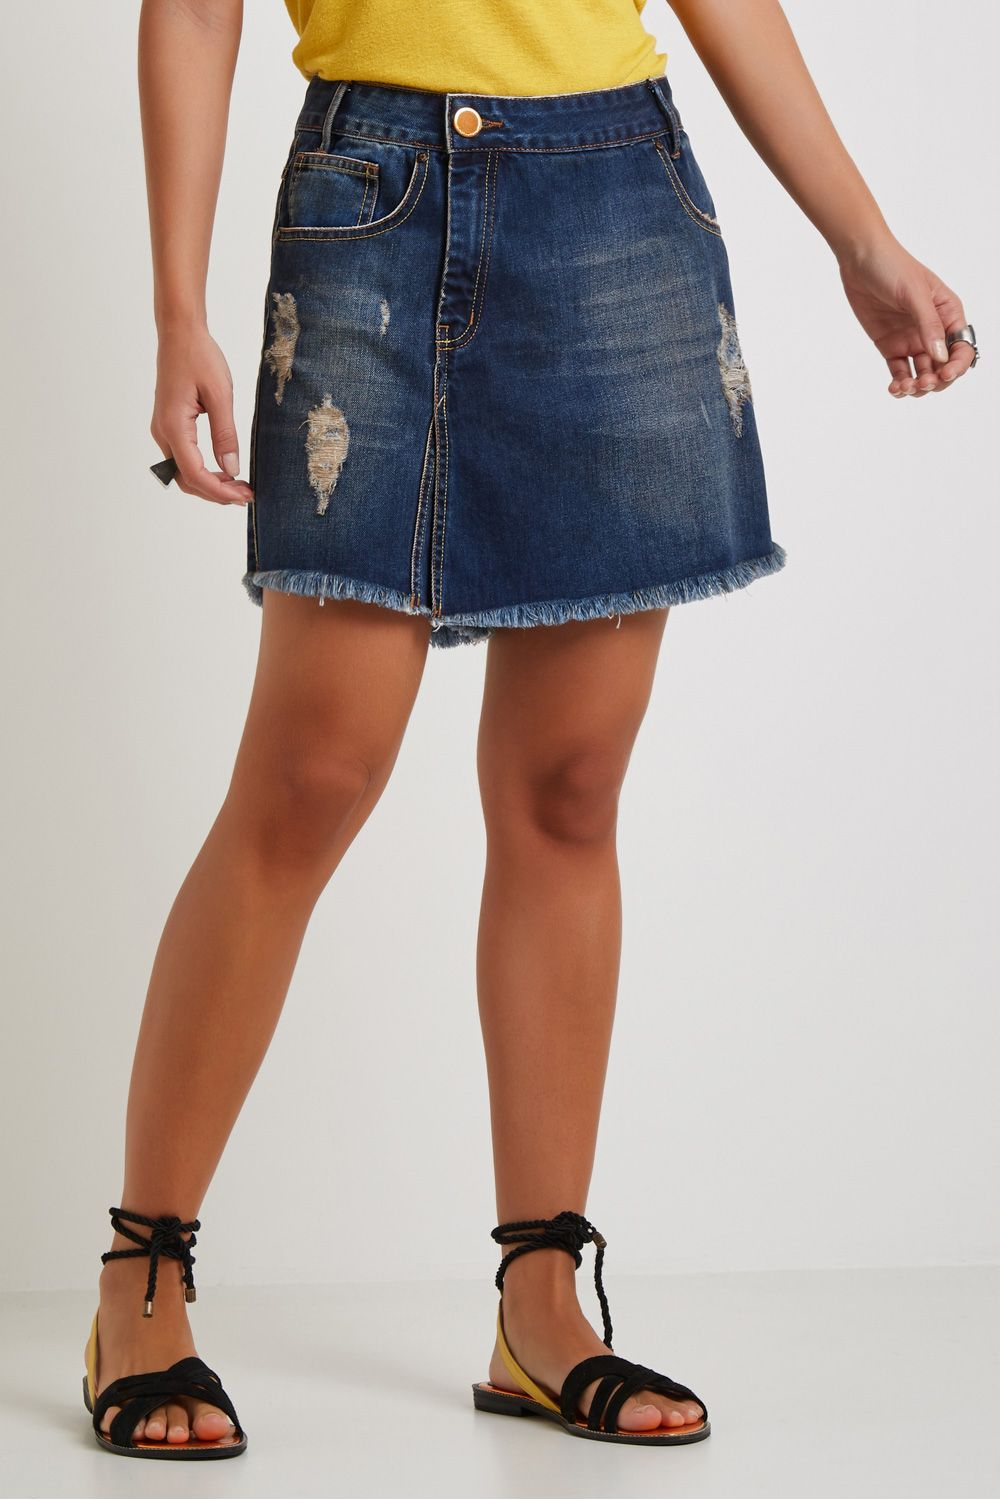 SHORT-SAIA-JEANS-DARK-BLUE-01025867_SACADA